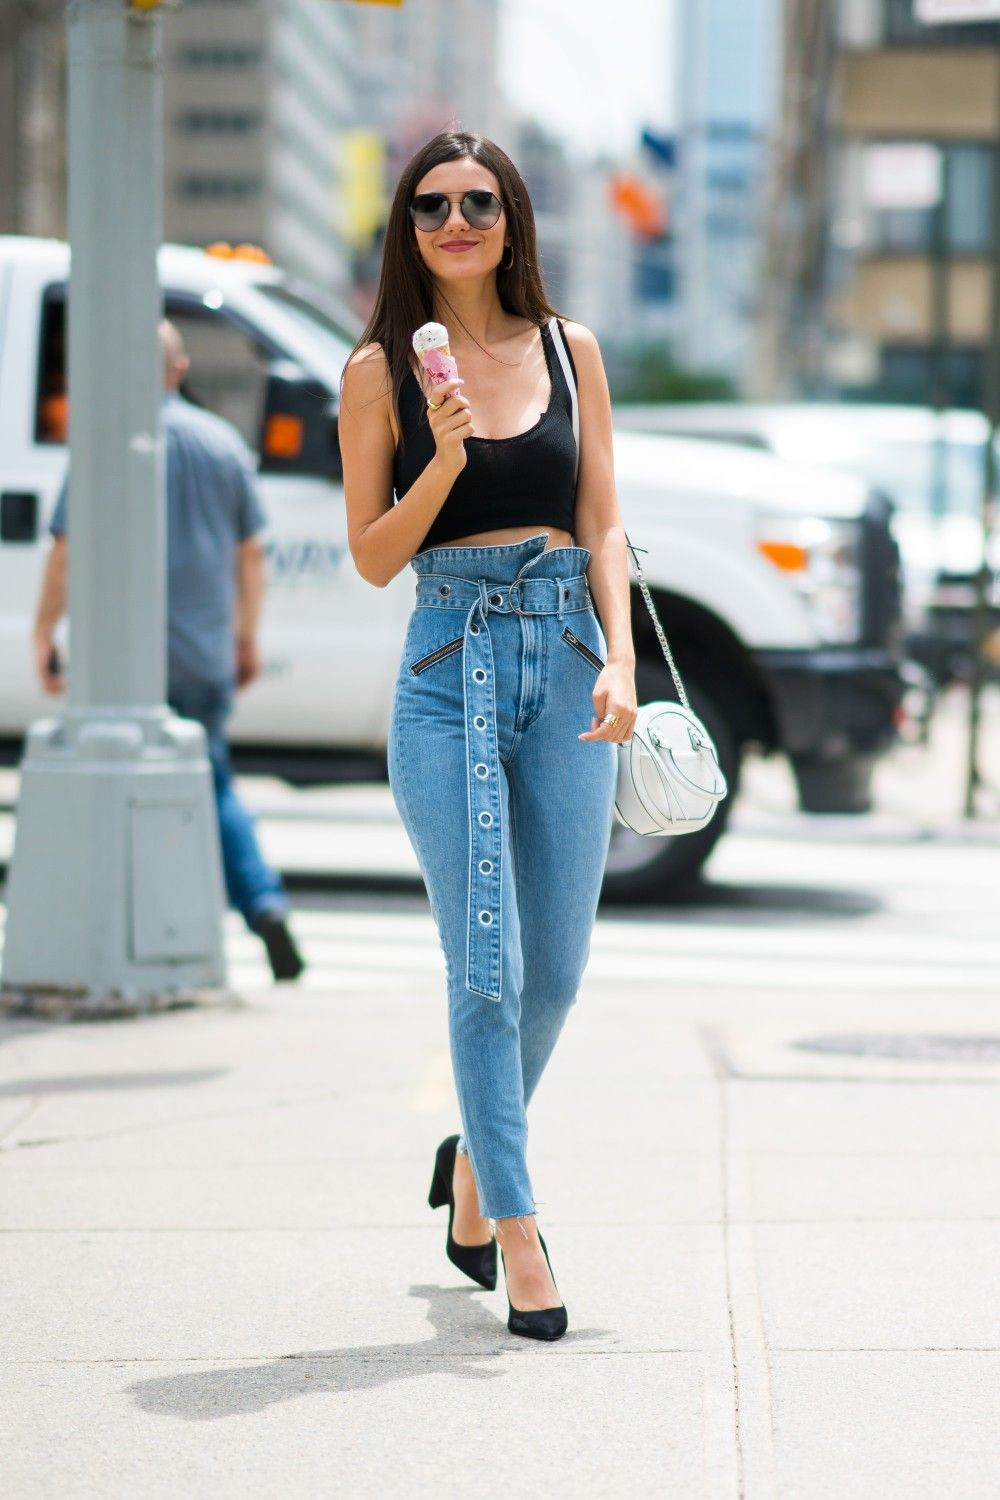 ab2aa6365 Victoria Justice   Victoria Justice in 2019   High waist jeans ...